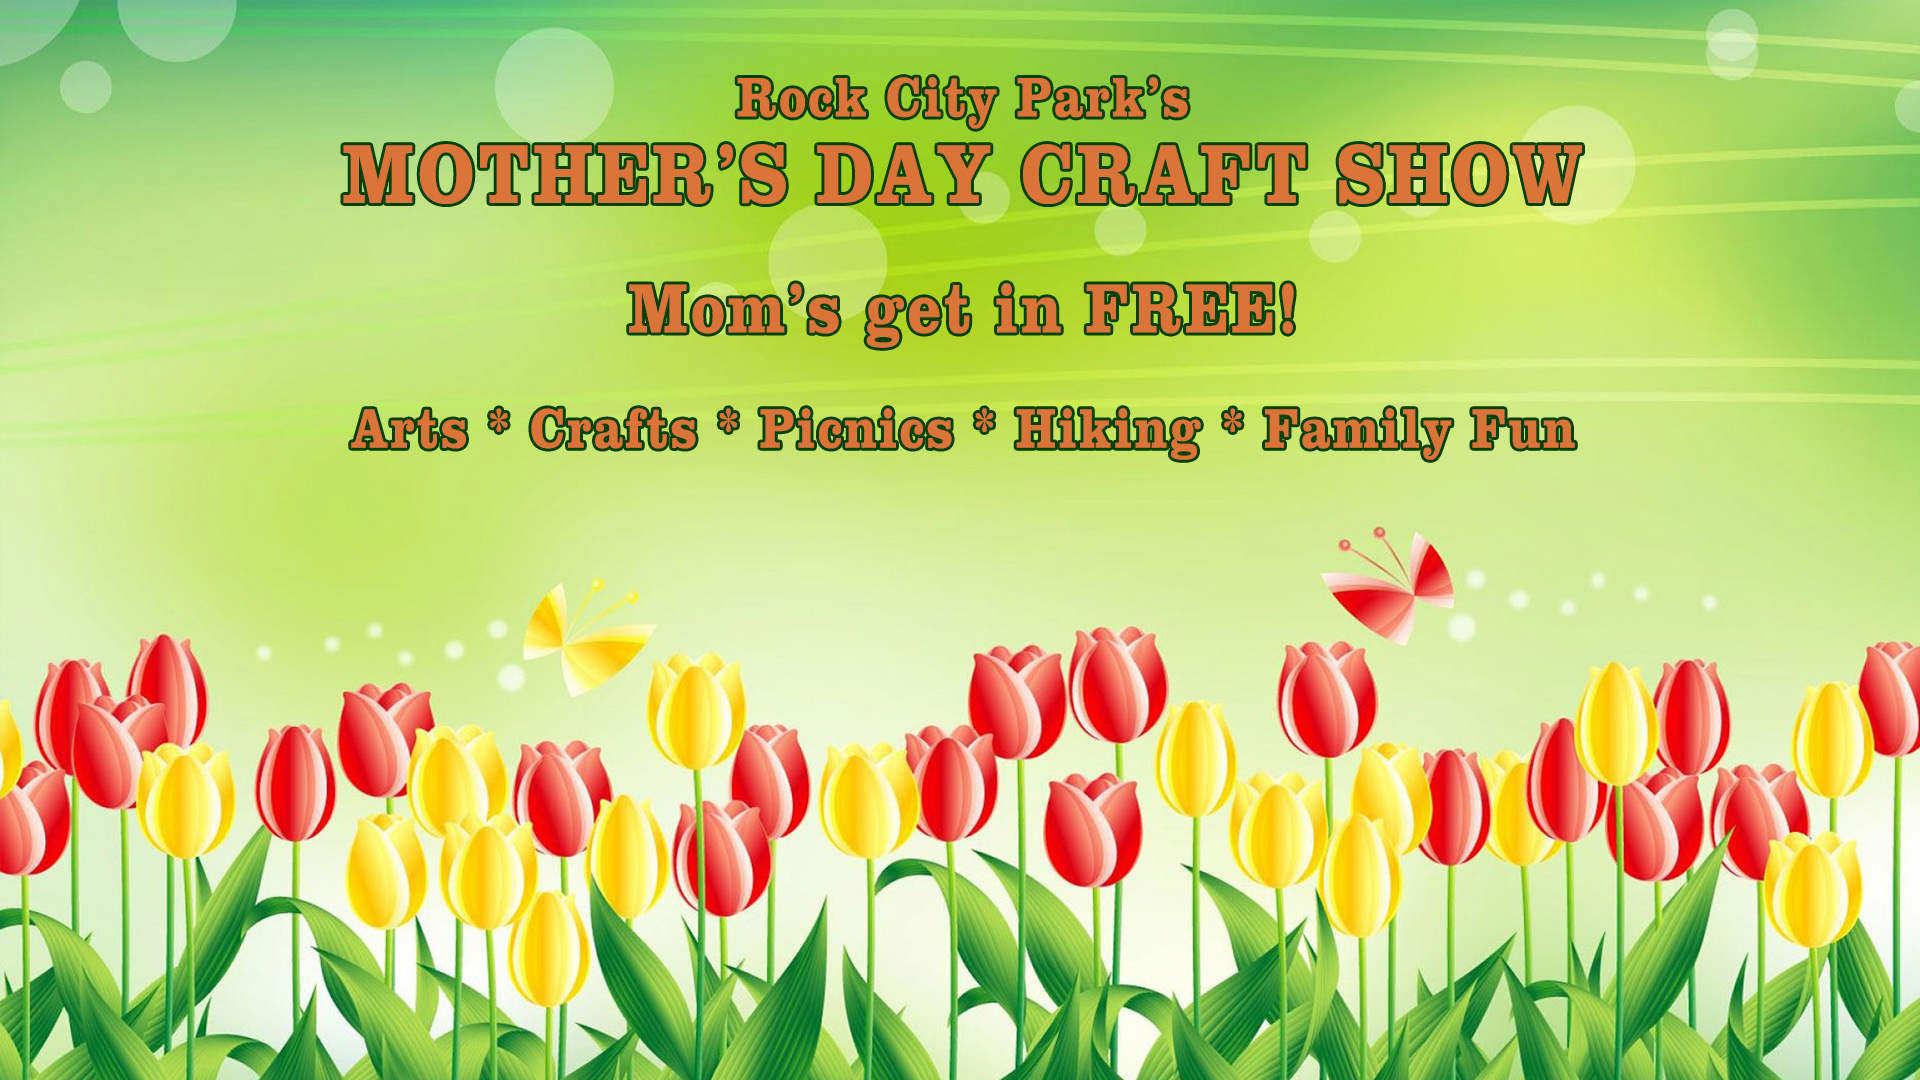 Rock City Park's Mother's Day Craft Show